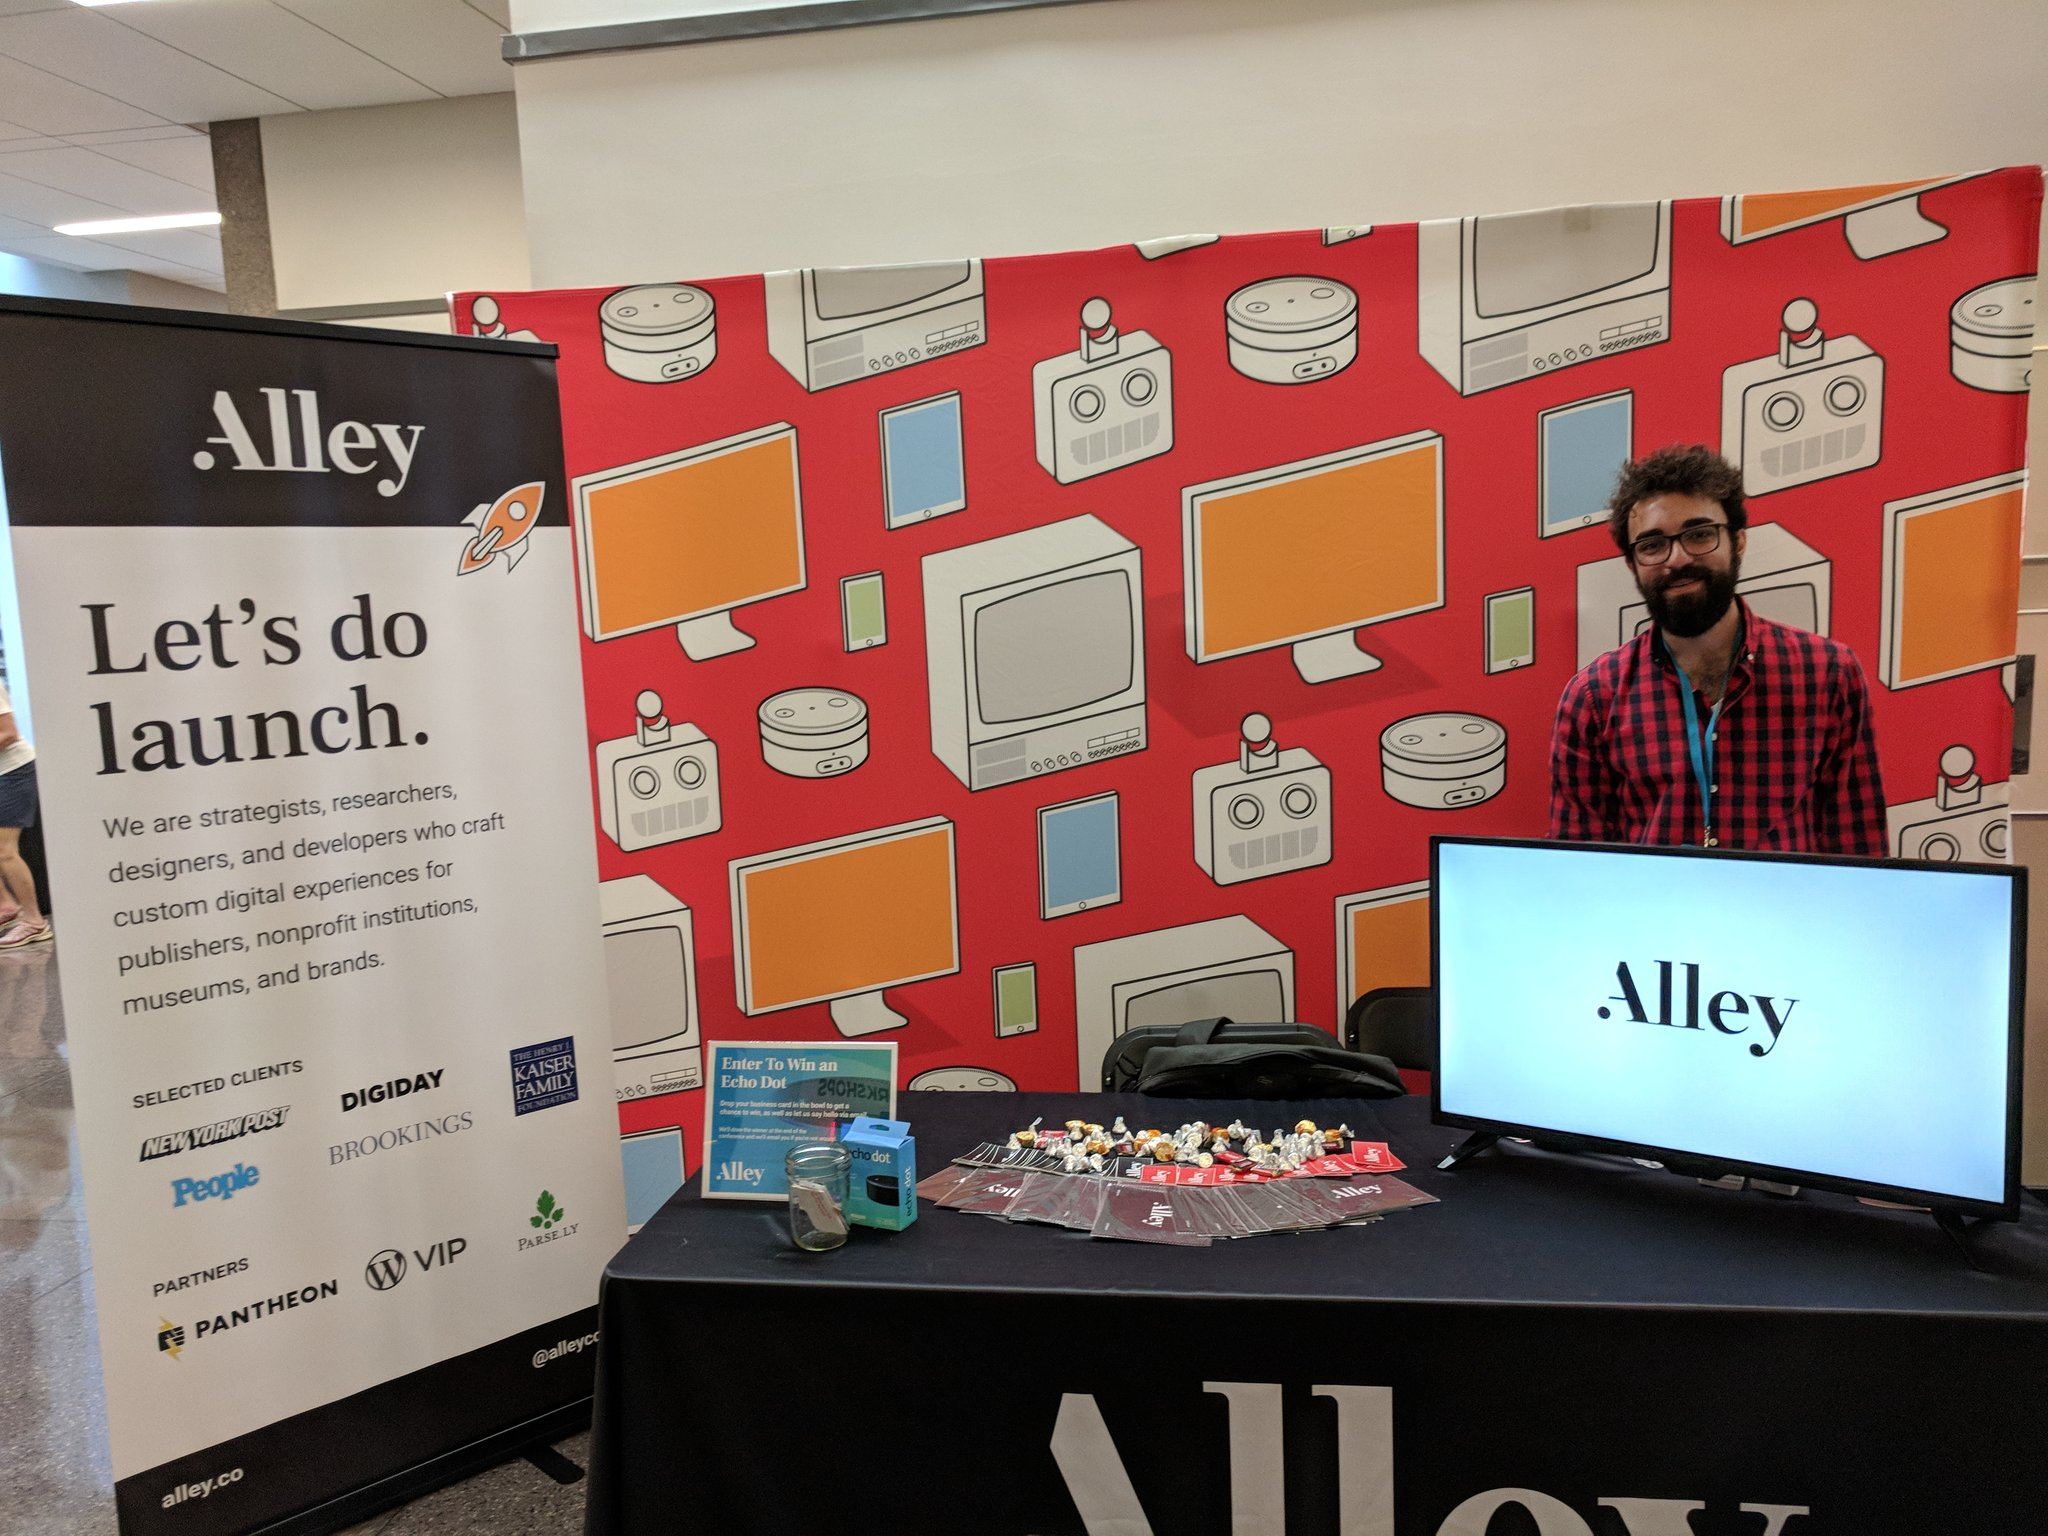 The Alley conference booth with a red  background with computers and tech devices, a television screen with the Alley logo, and a banner, as well as a White man in a plaid shirt smiling at the camera